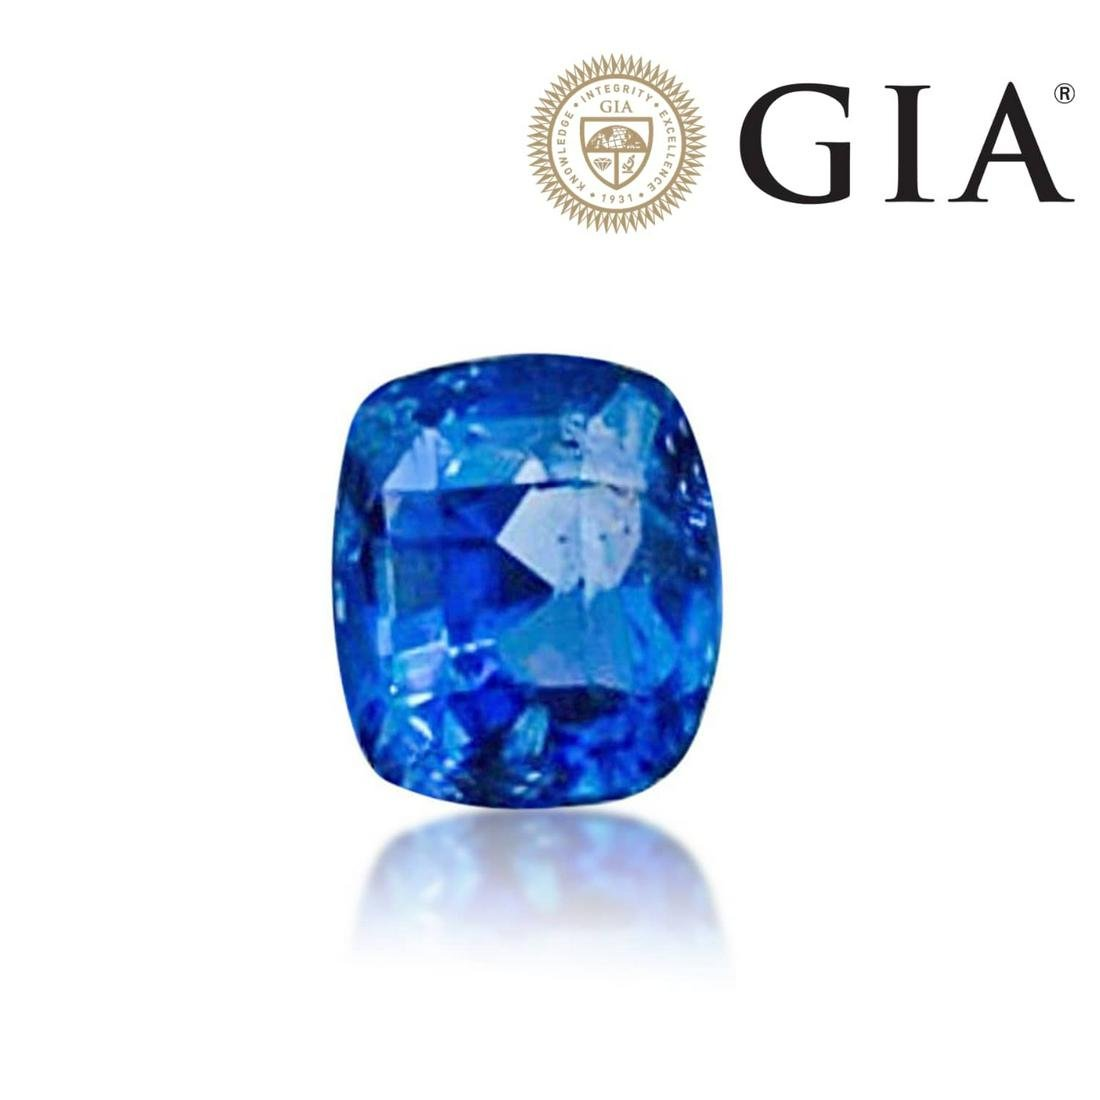 GIA certified, 7.02 carat no heat blue sapphire loose